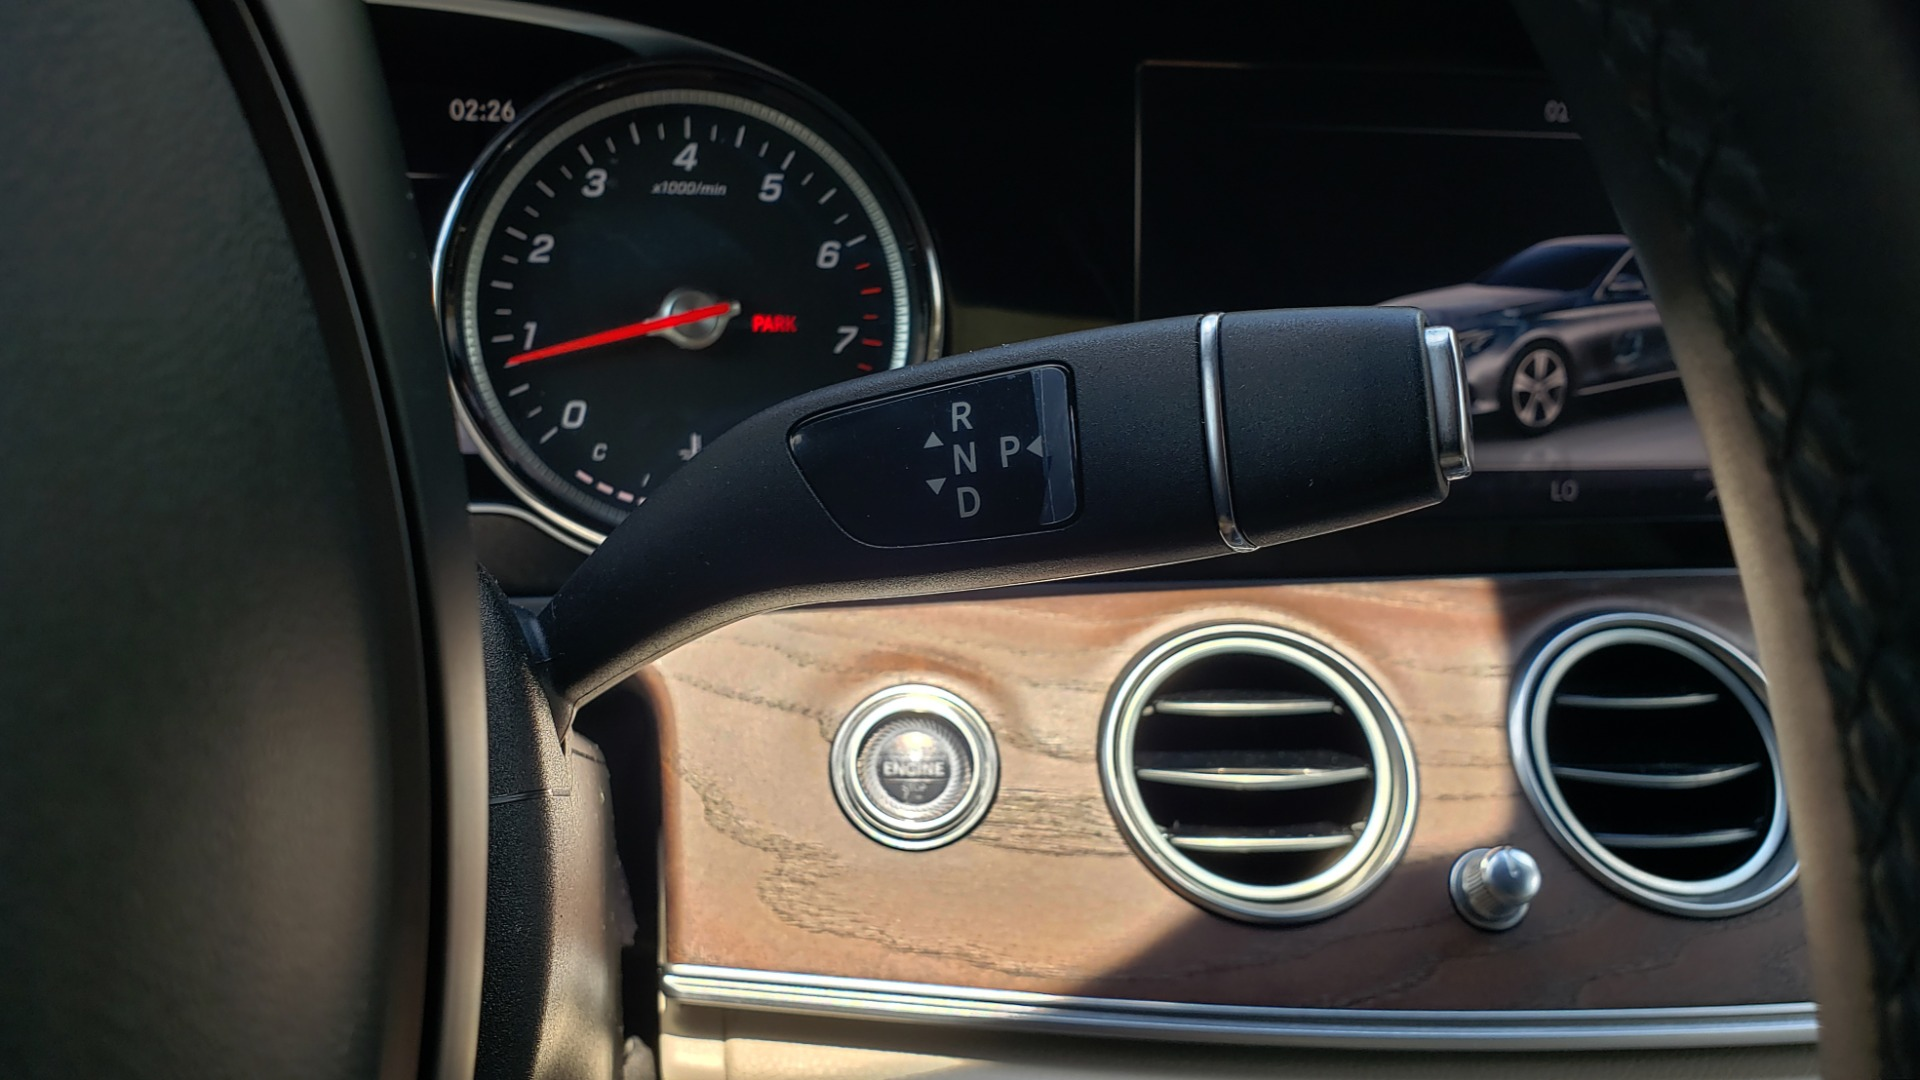 Used 2017 Mercedes-Benz E-CLASS E 300 PREMIUM / SPORT / NAV / SUNROOF / HTD STS / BSM / REARVIEW for sale $27,995 at Formula Imports in Charlotte NC 28227 54